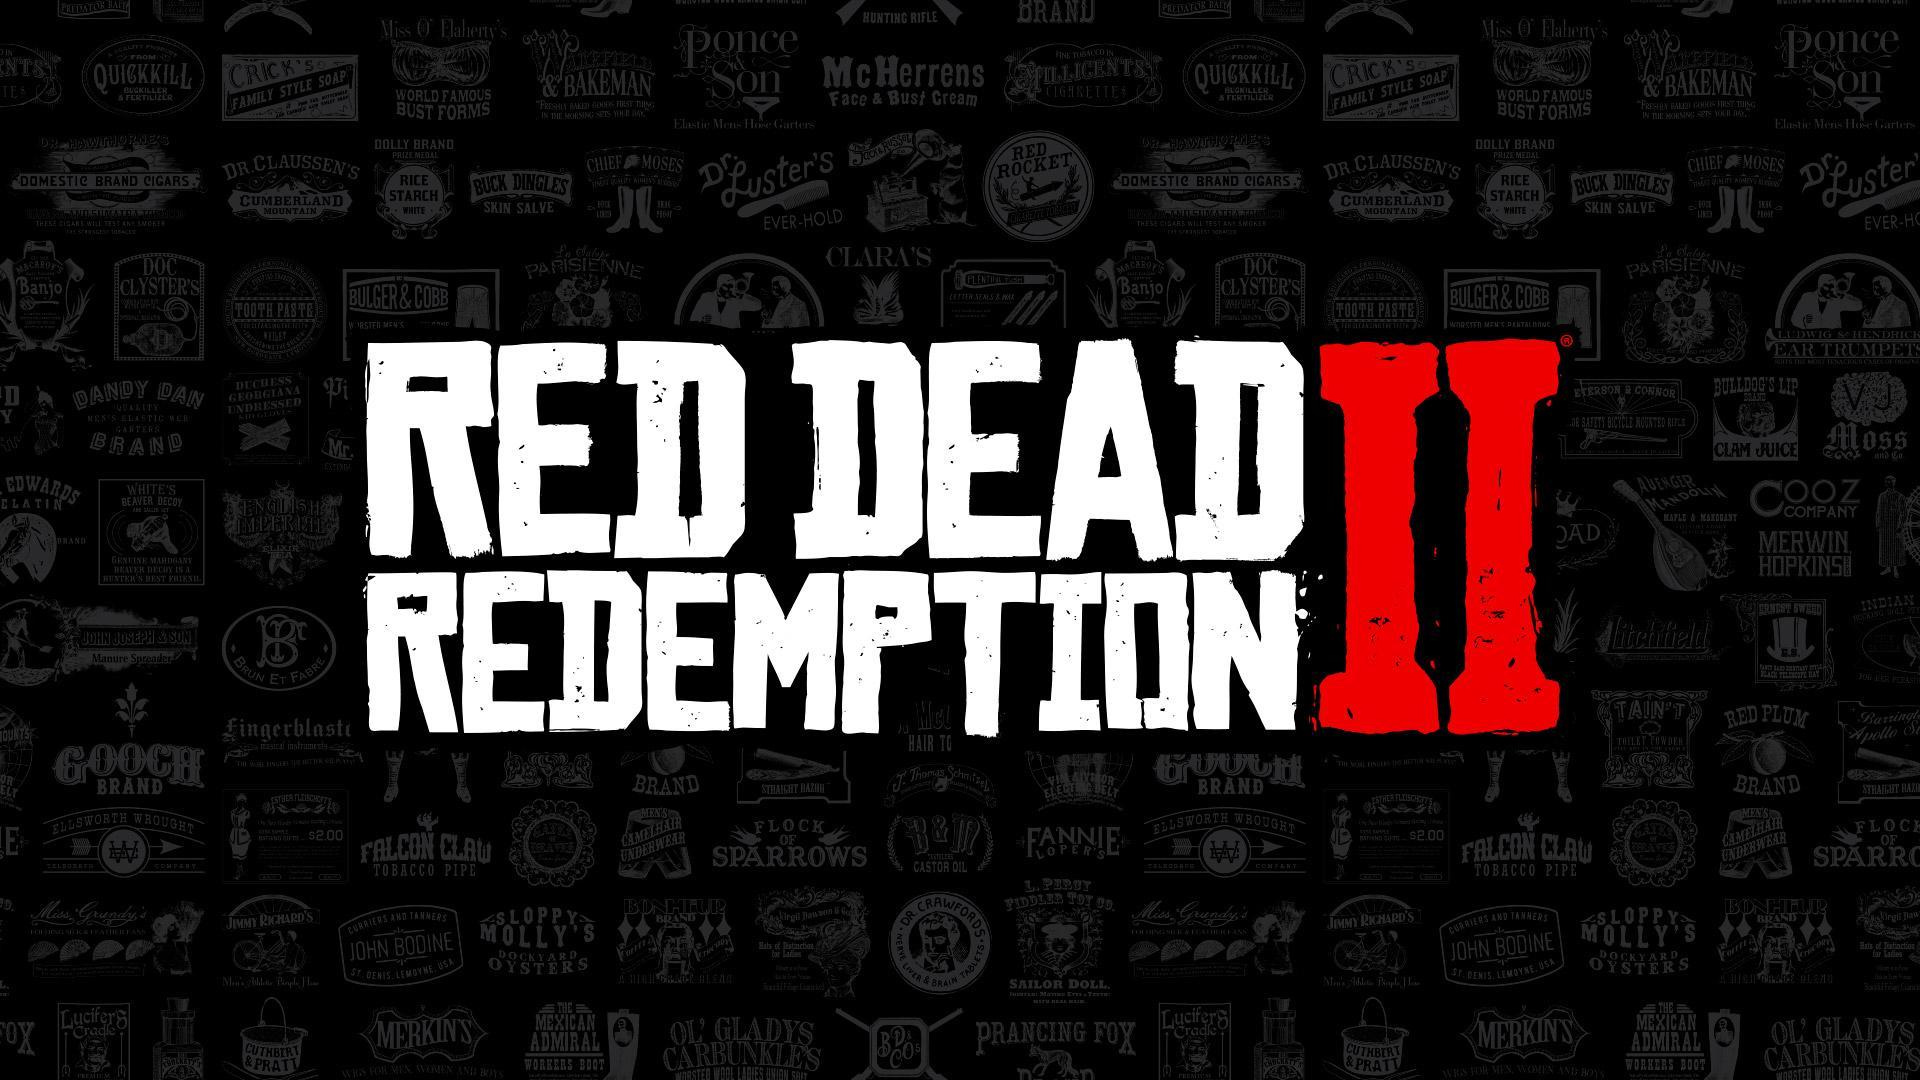 Limited-Edition Red Dead Redemption 2 Gear and Collectibles Coming Soon